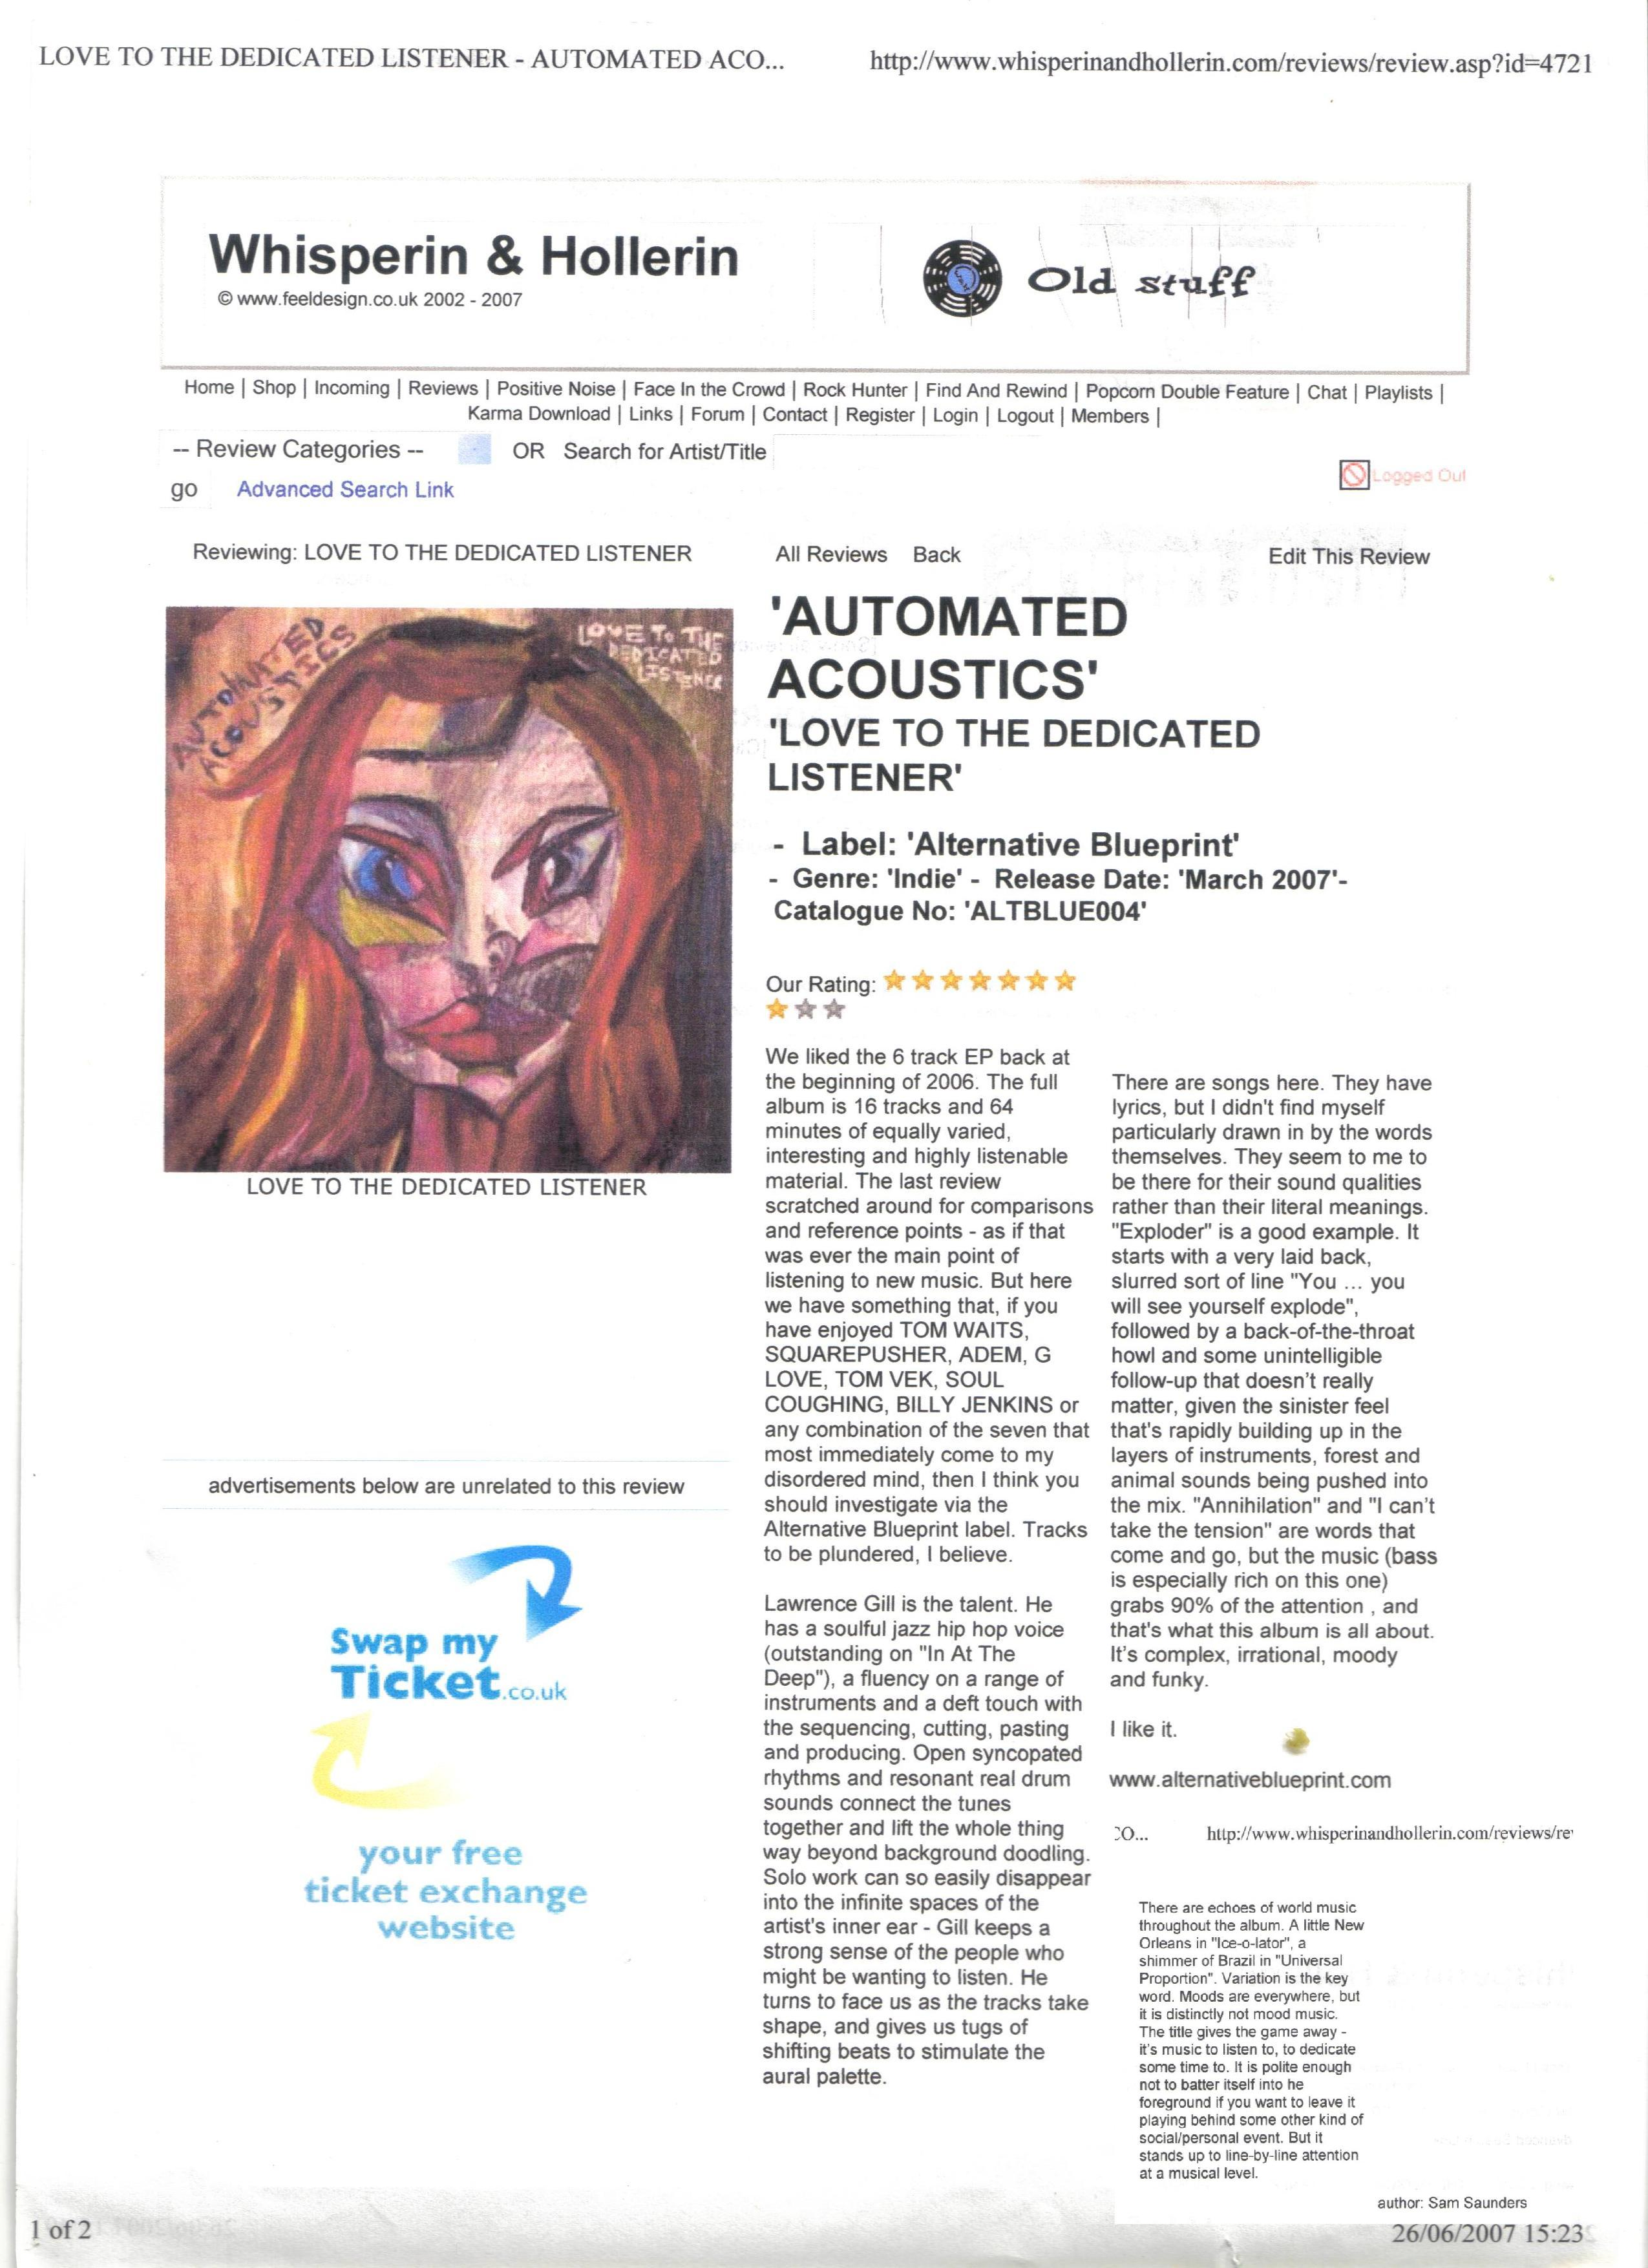 Reviews for love to the dedicated listener album automated acoustics altblue004 alternative blueprint records whisperin hollerin review of the album love to the dedicated listener malvernweather Choice Image